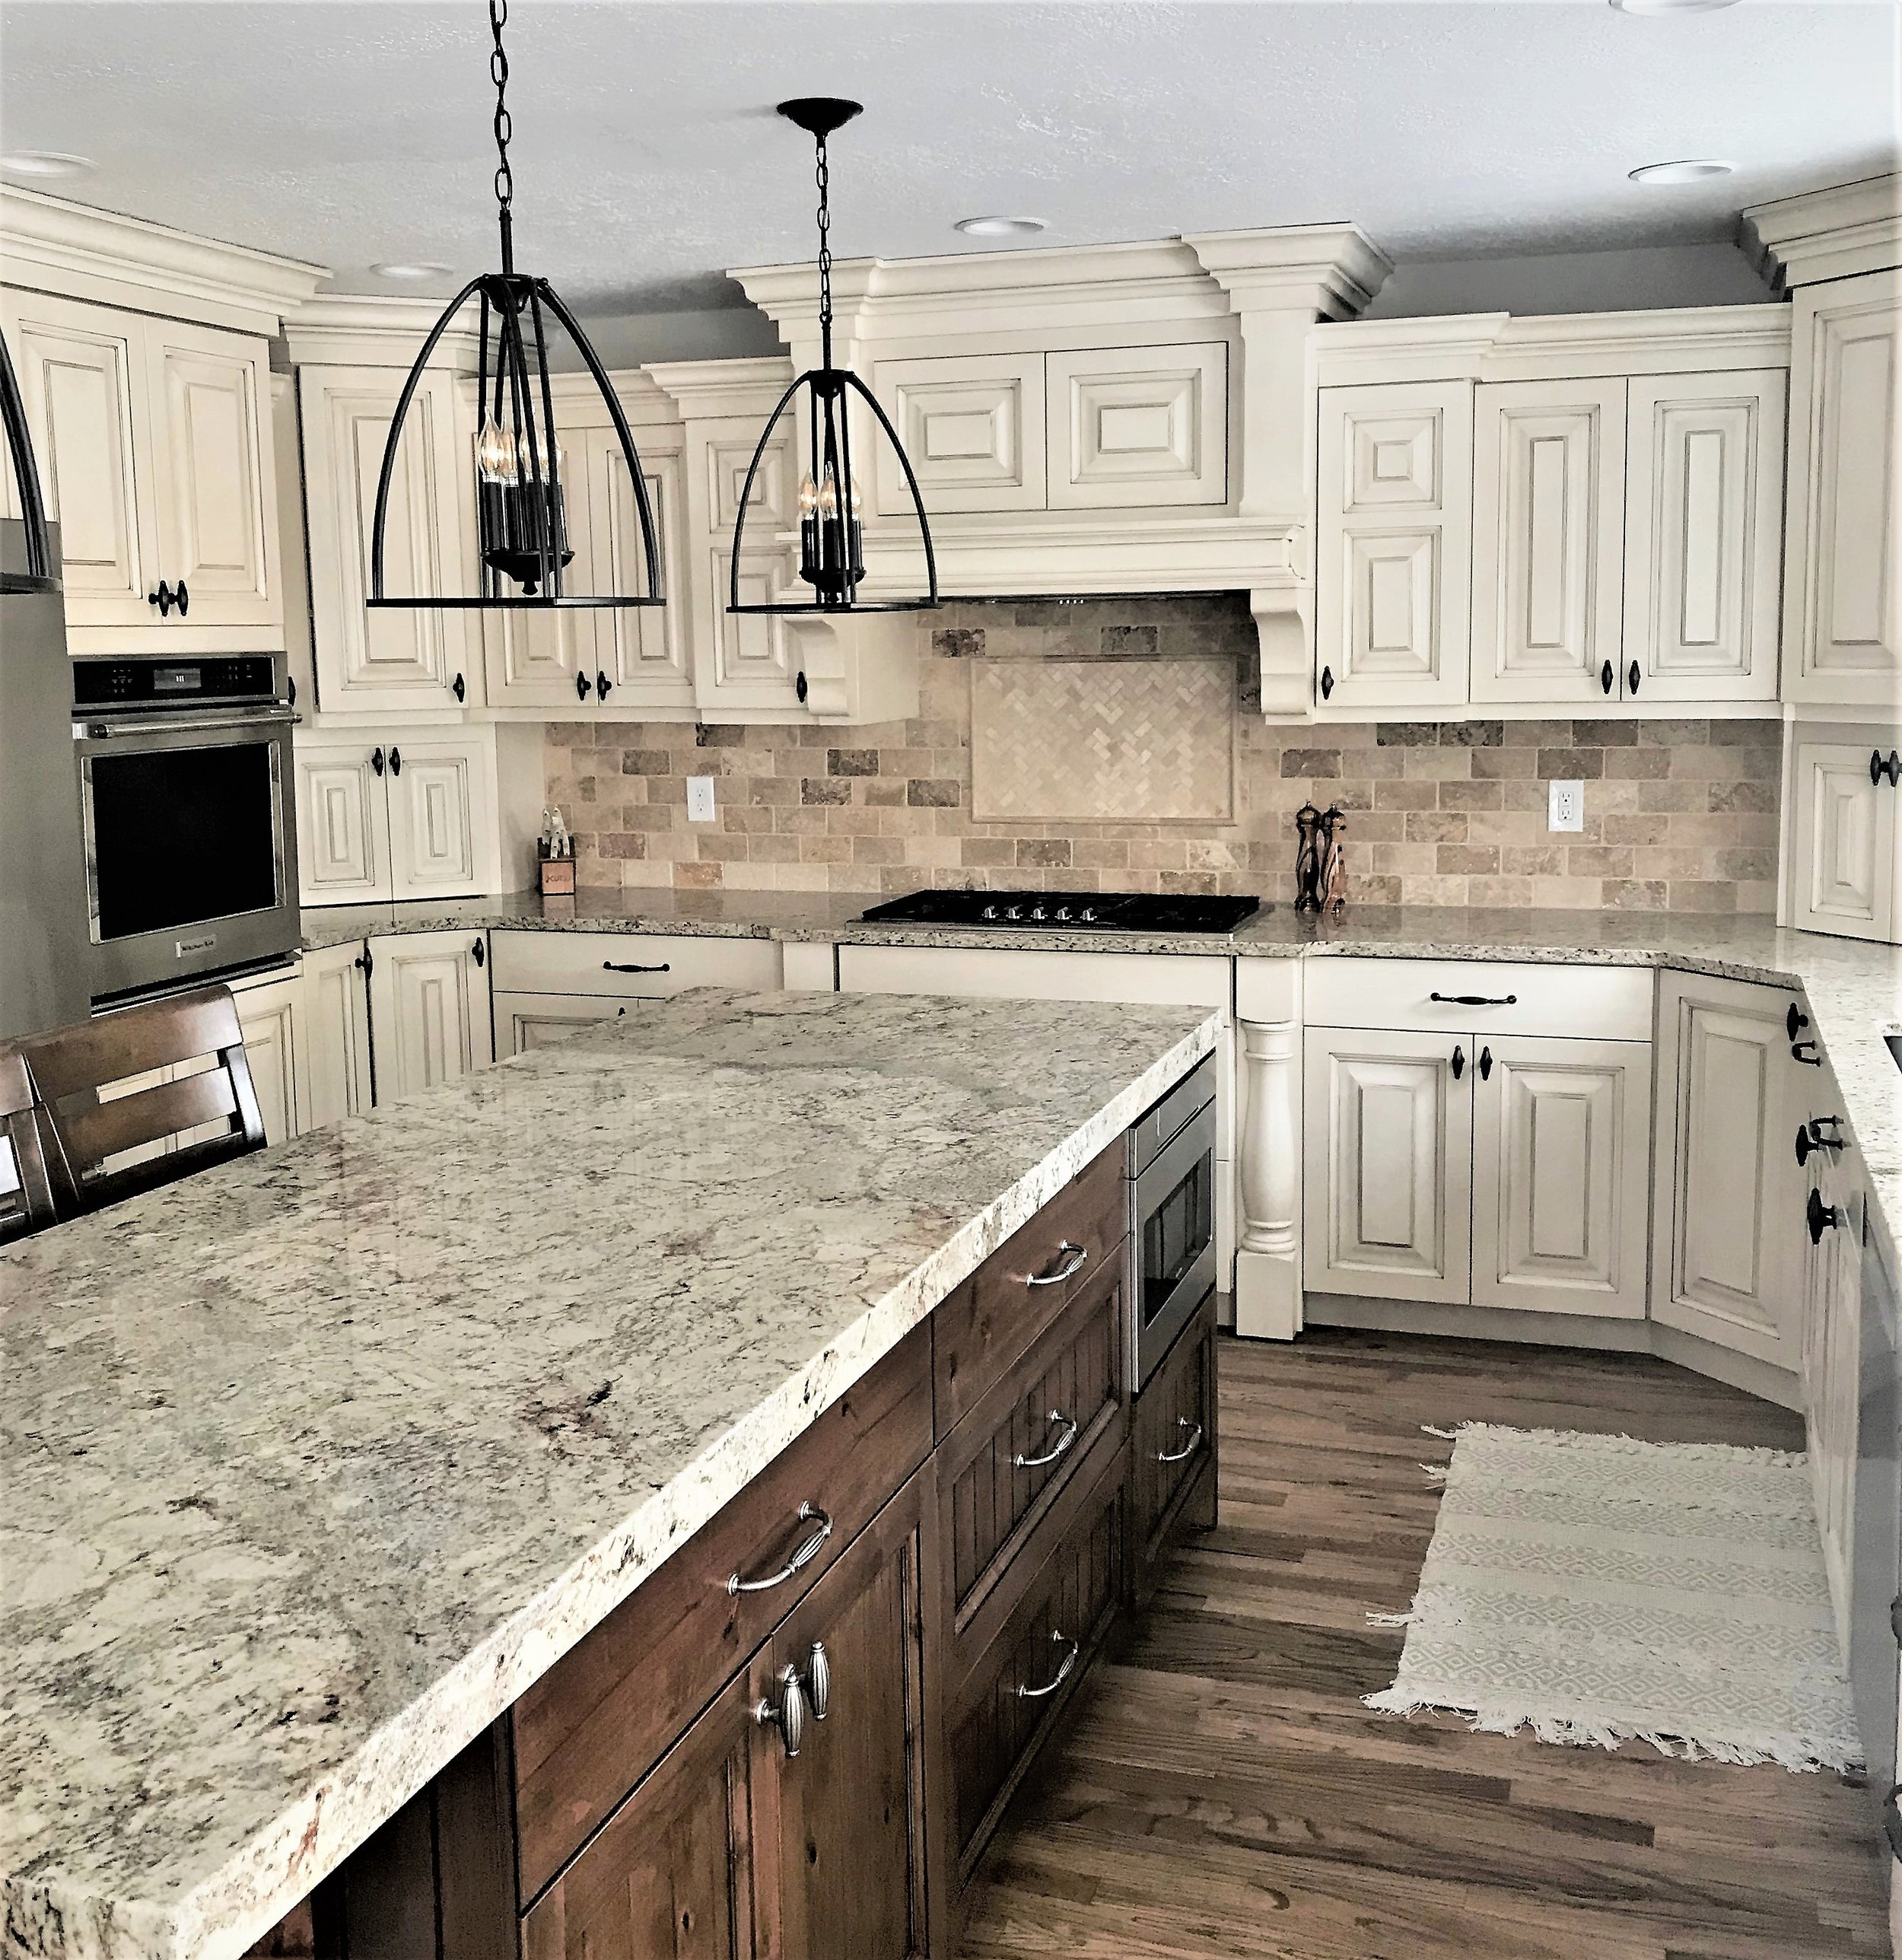 Kitchen Portfolio - Space Planning | Interior Design | Custom Cabinetry | Custom Pantry Doors | Tile Back Splashes | Custom Pantries | Flooring | And More